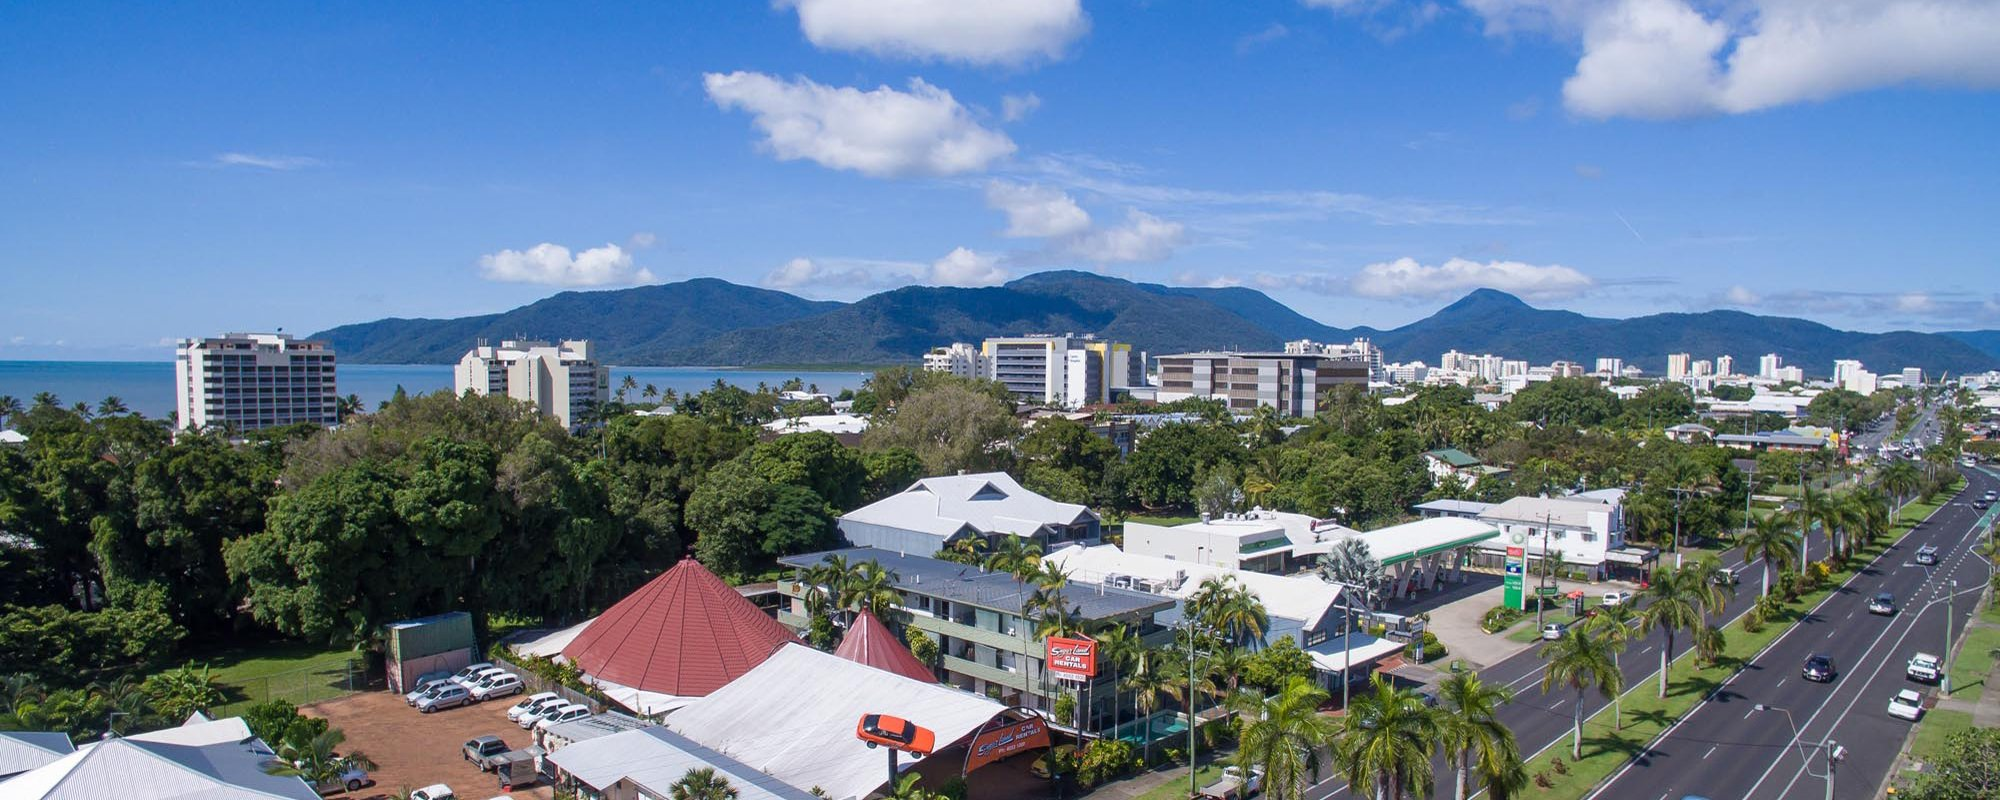 Cairns Holiday Lodge 102